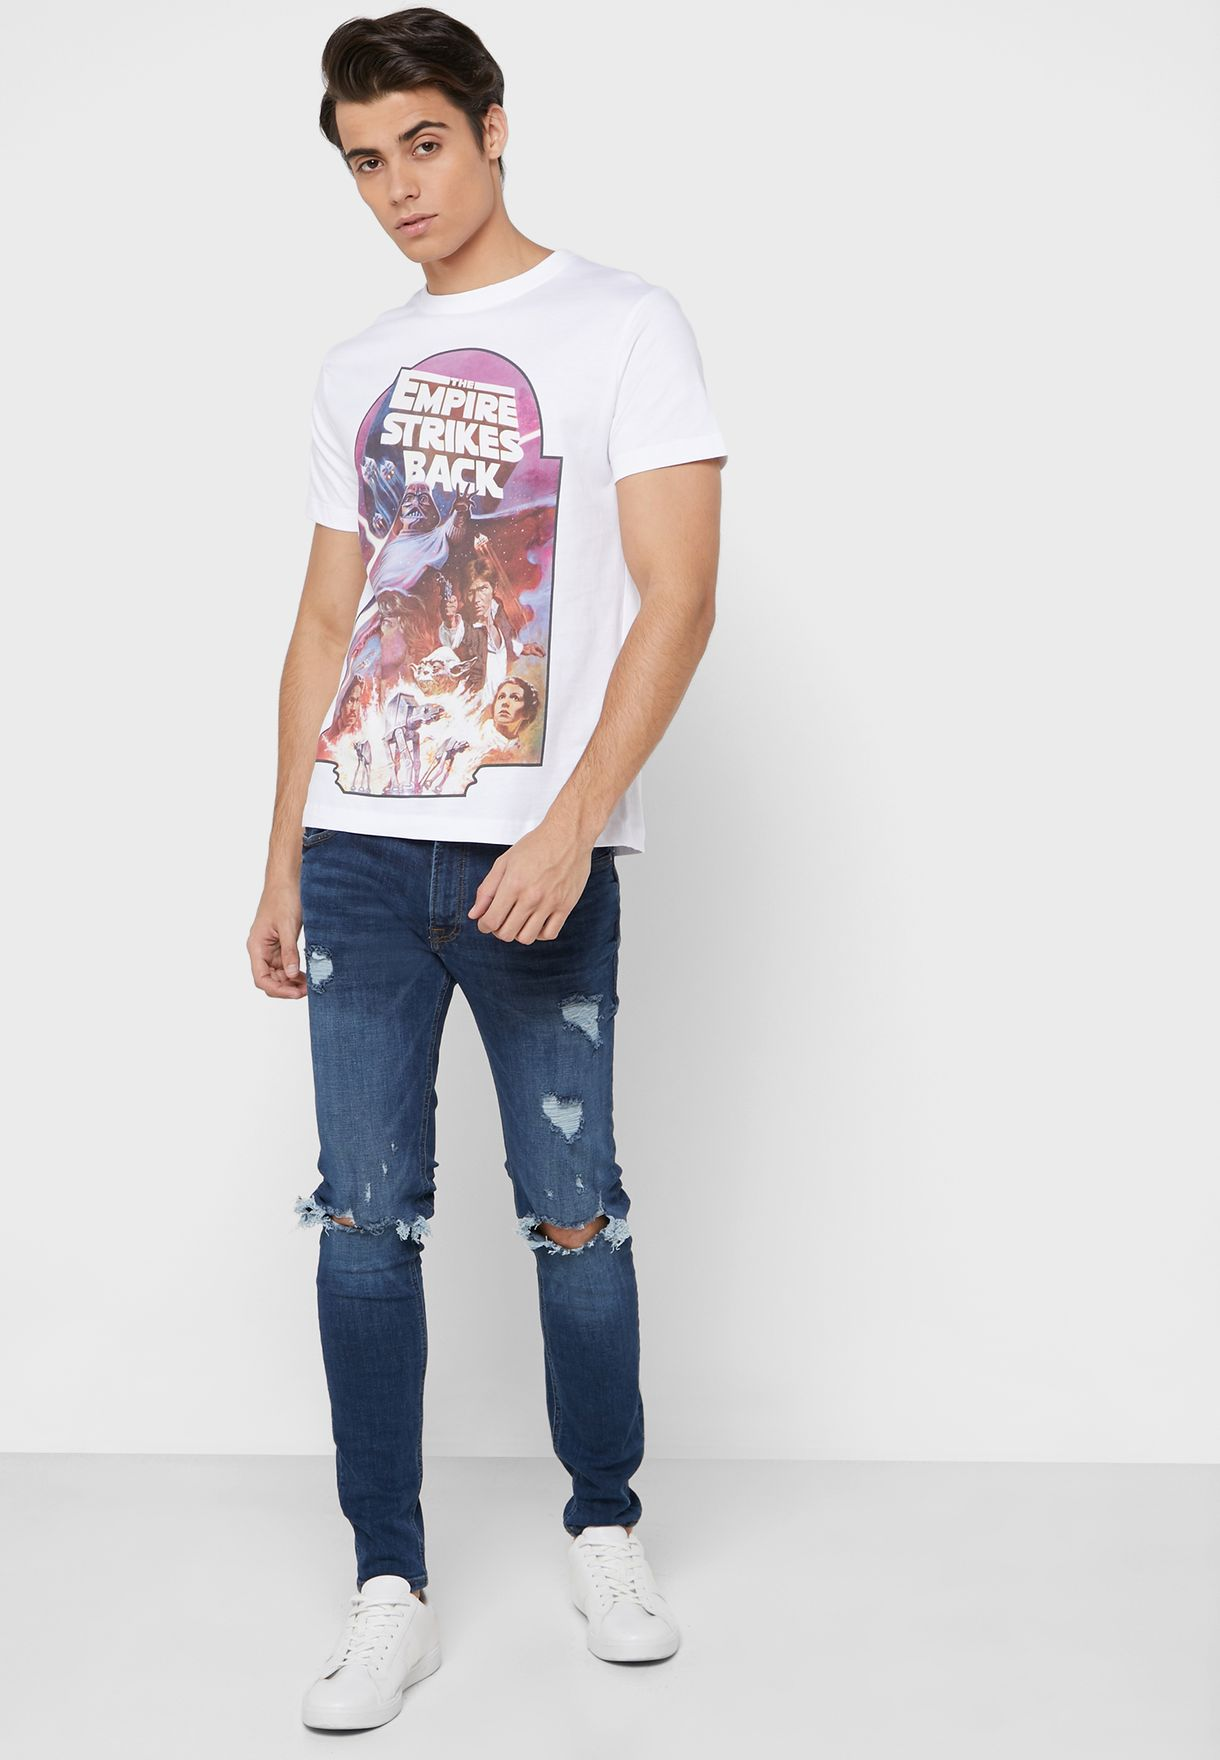 The Empire Strikes Back Crew Neck T-shirt